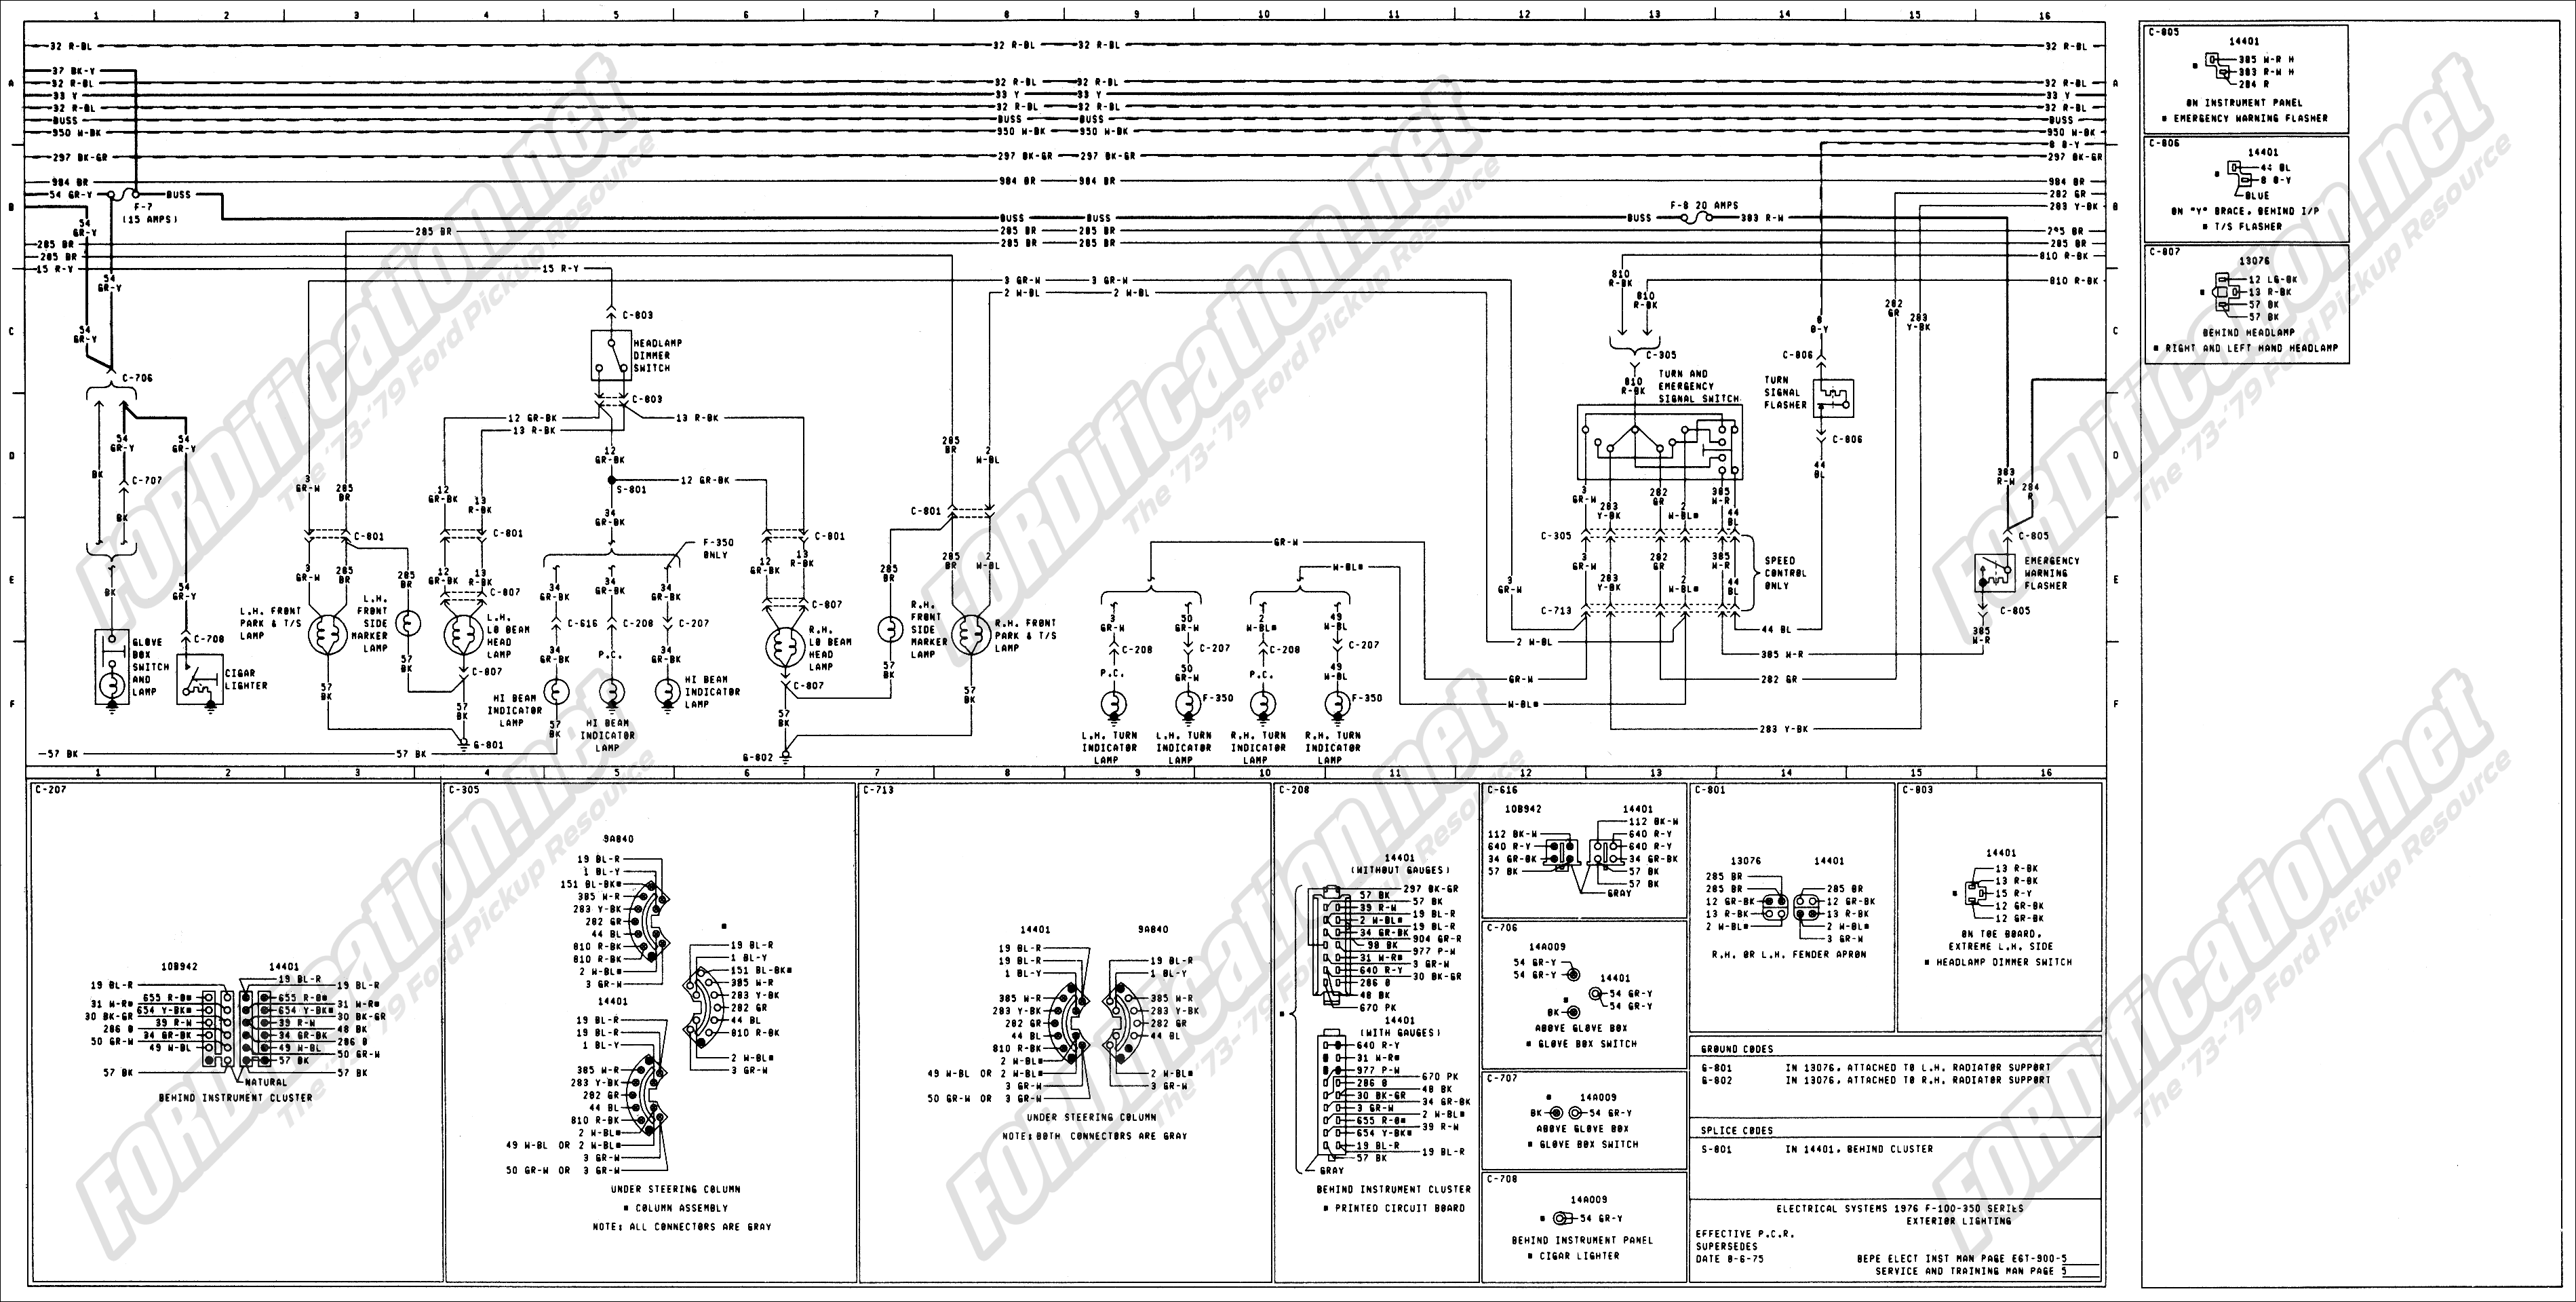 1975 dodge wiring diagram Images Gallery